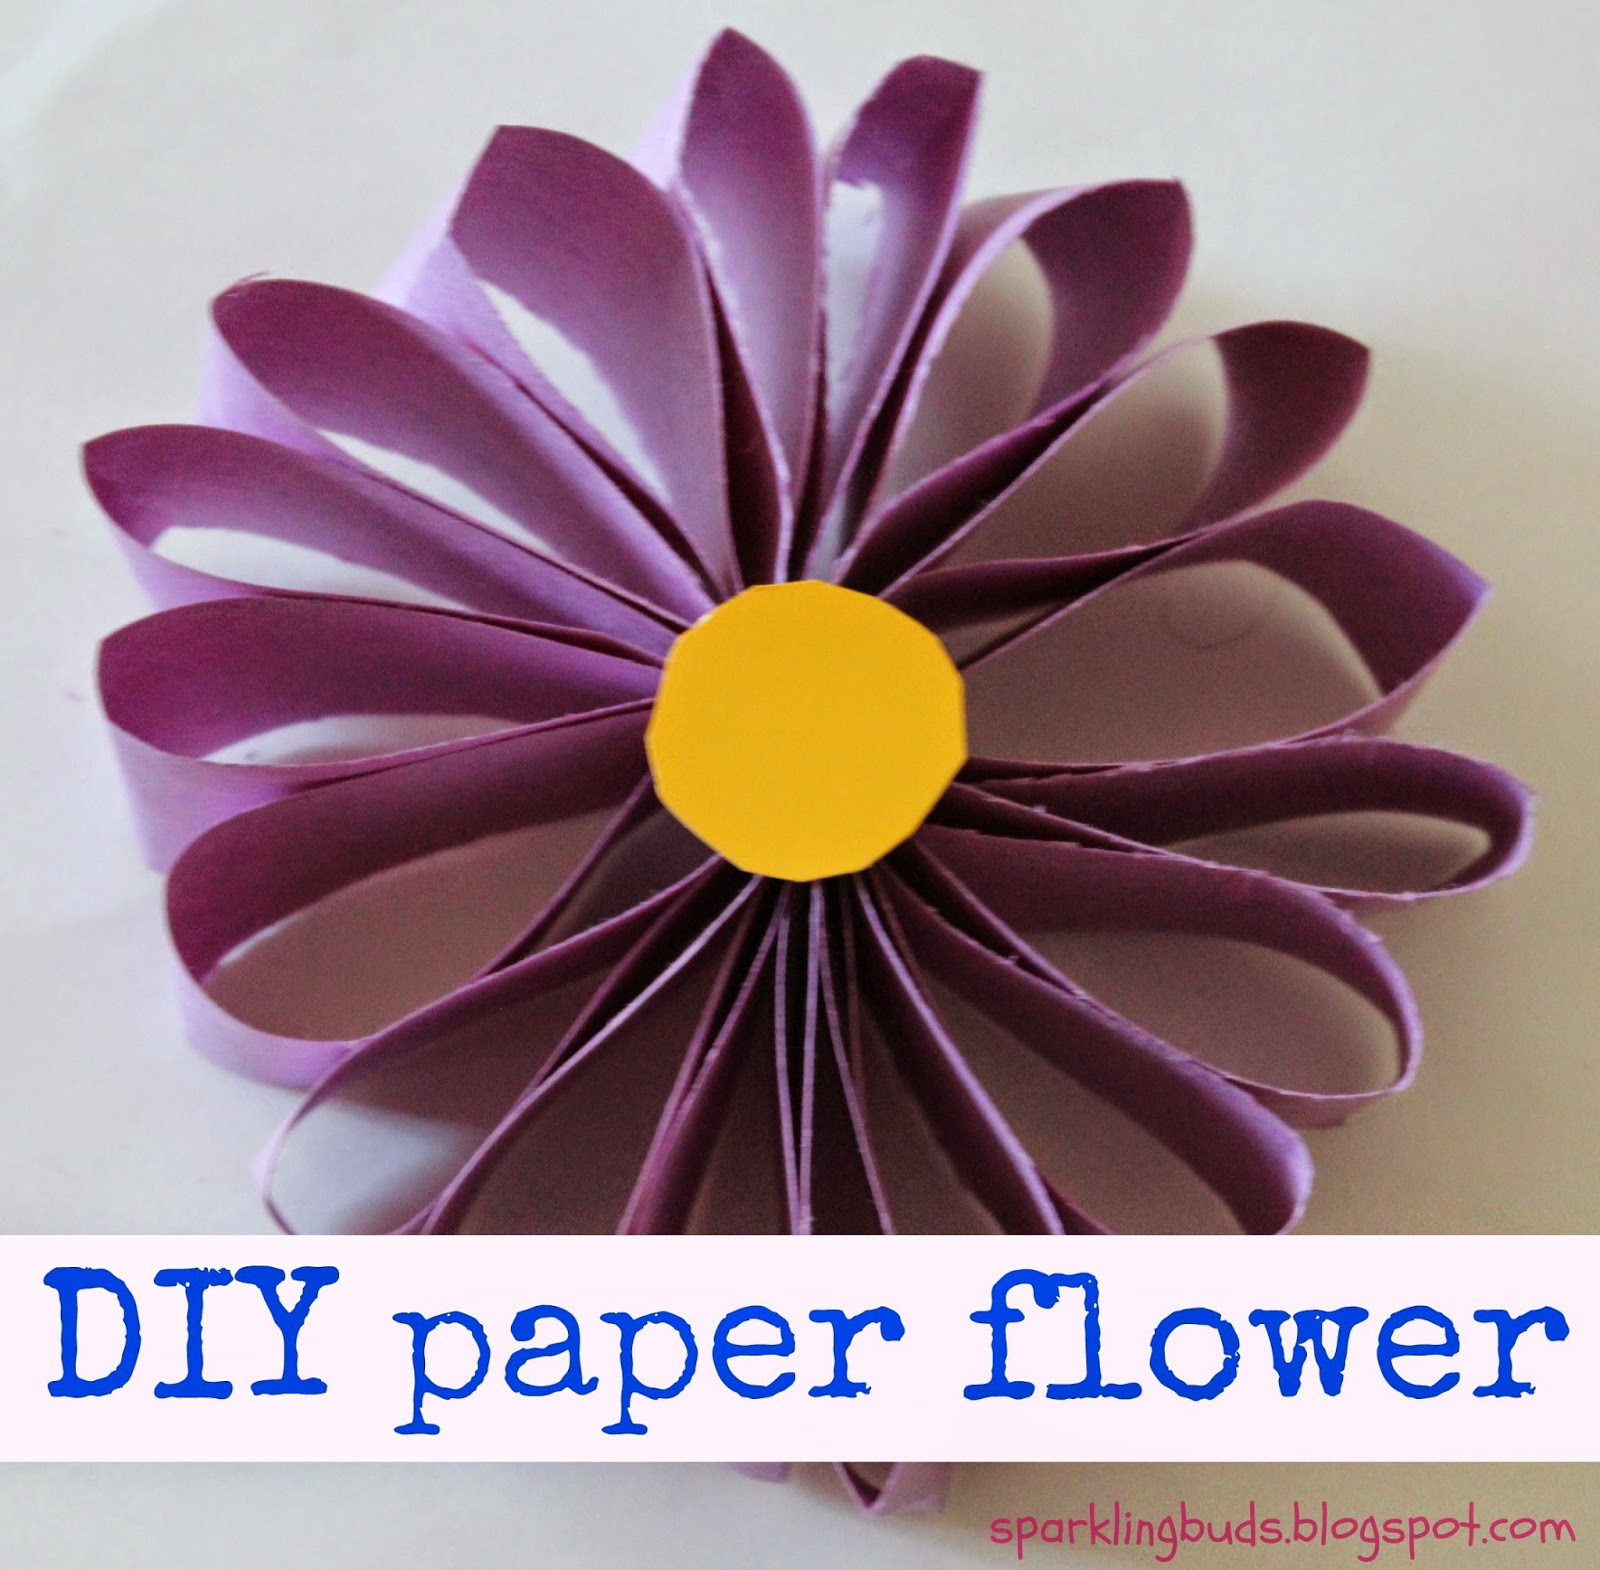 Easy paper flower sparklingbuds thanks for reading the post hope you enjoyed reading you may be interested in our other paper crafts mightylinksfo